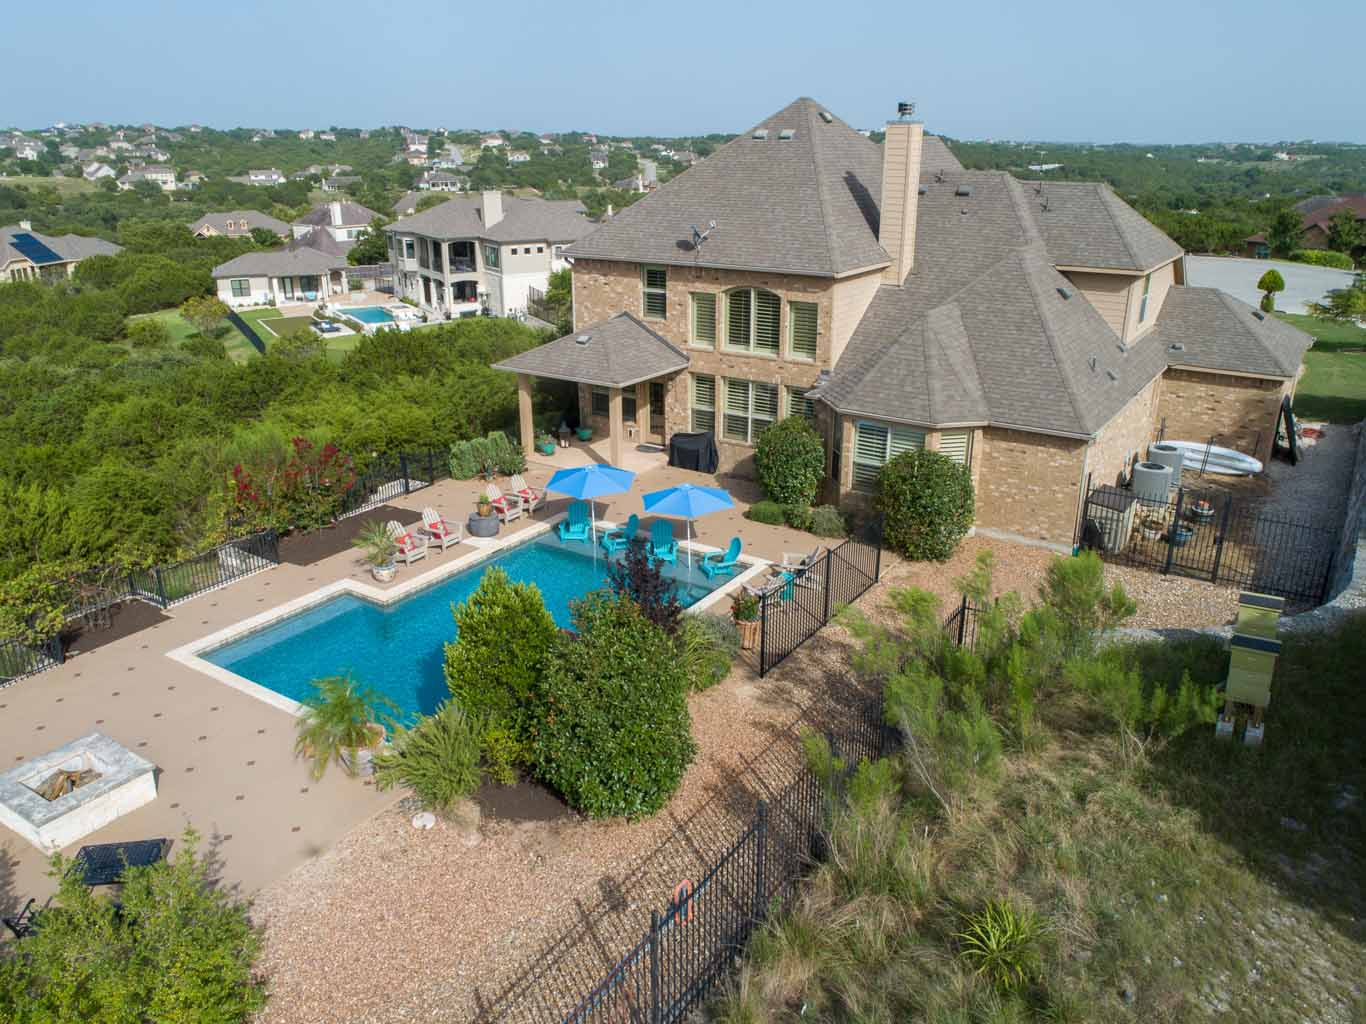 Drone Real Estate Photography Services -Aerial Drone Shot of a nice house